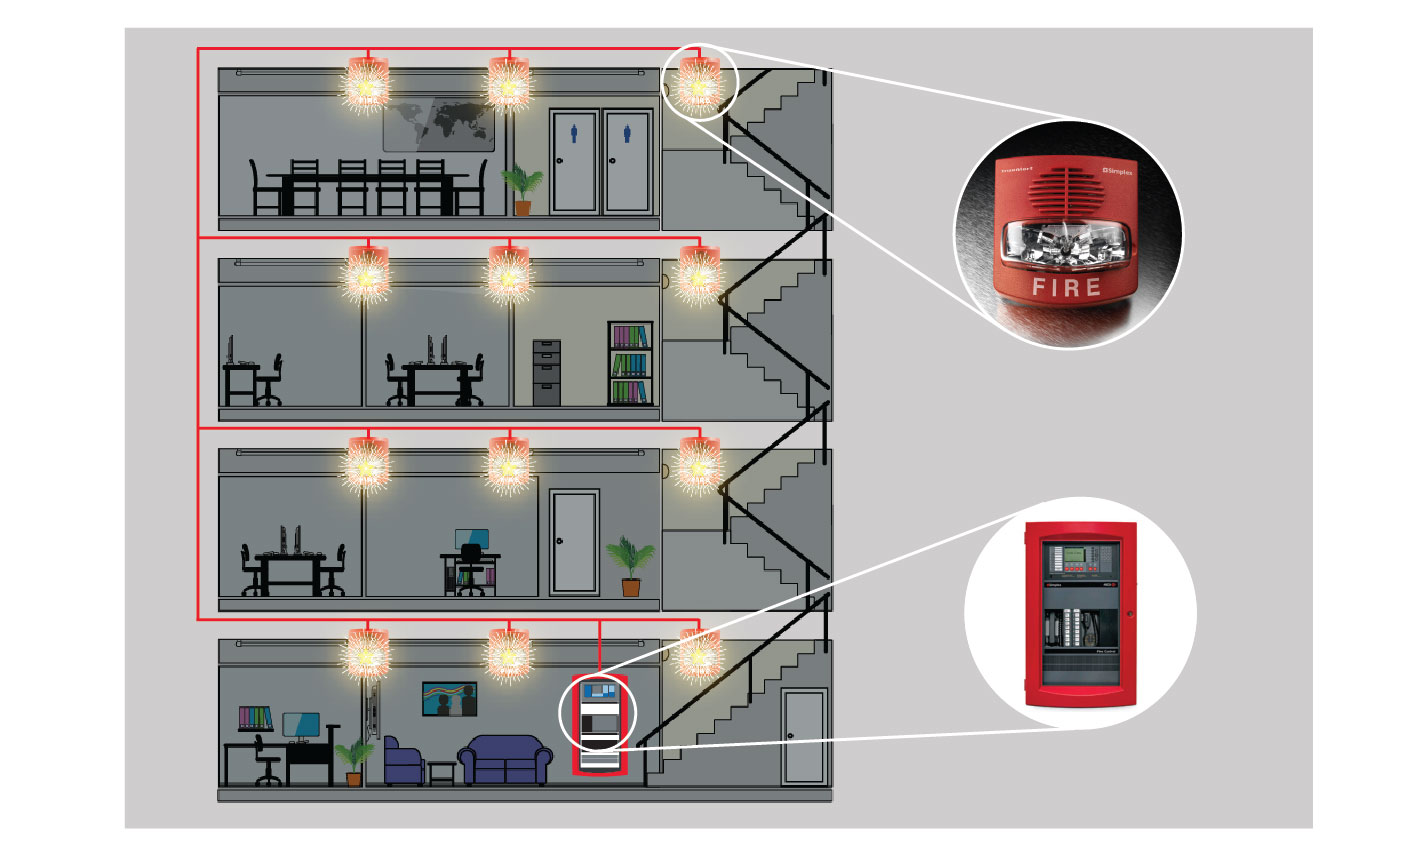 Image for the Fire Alarm Systems product